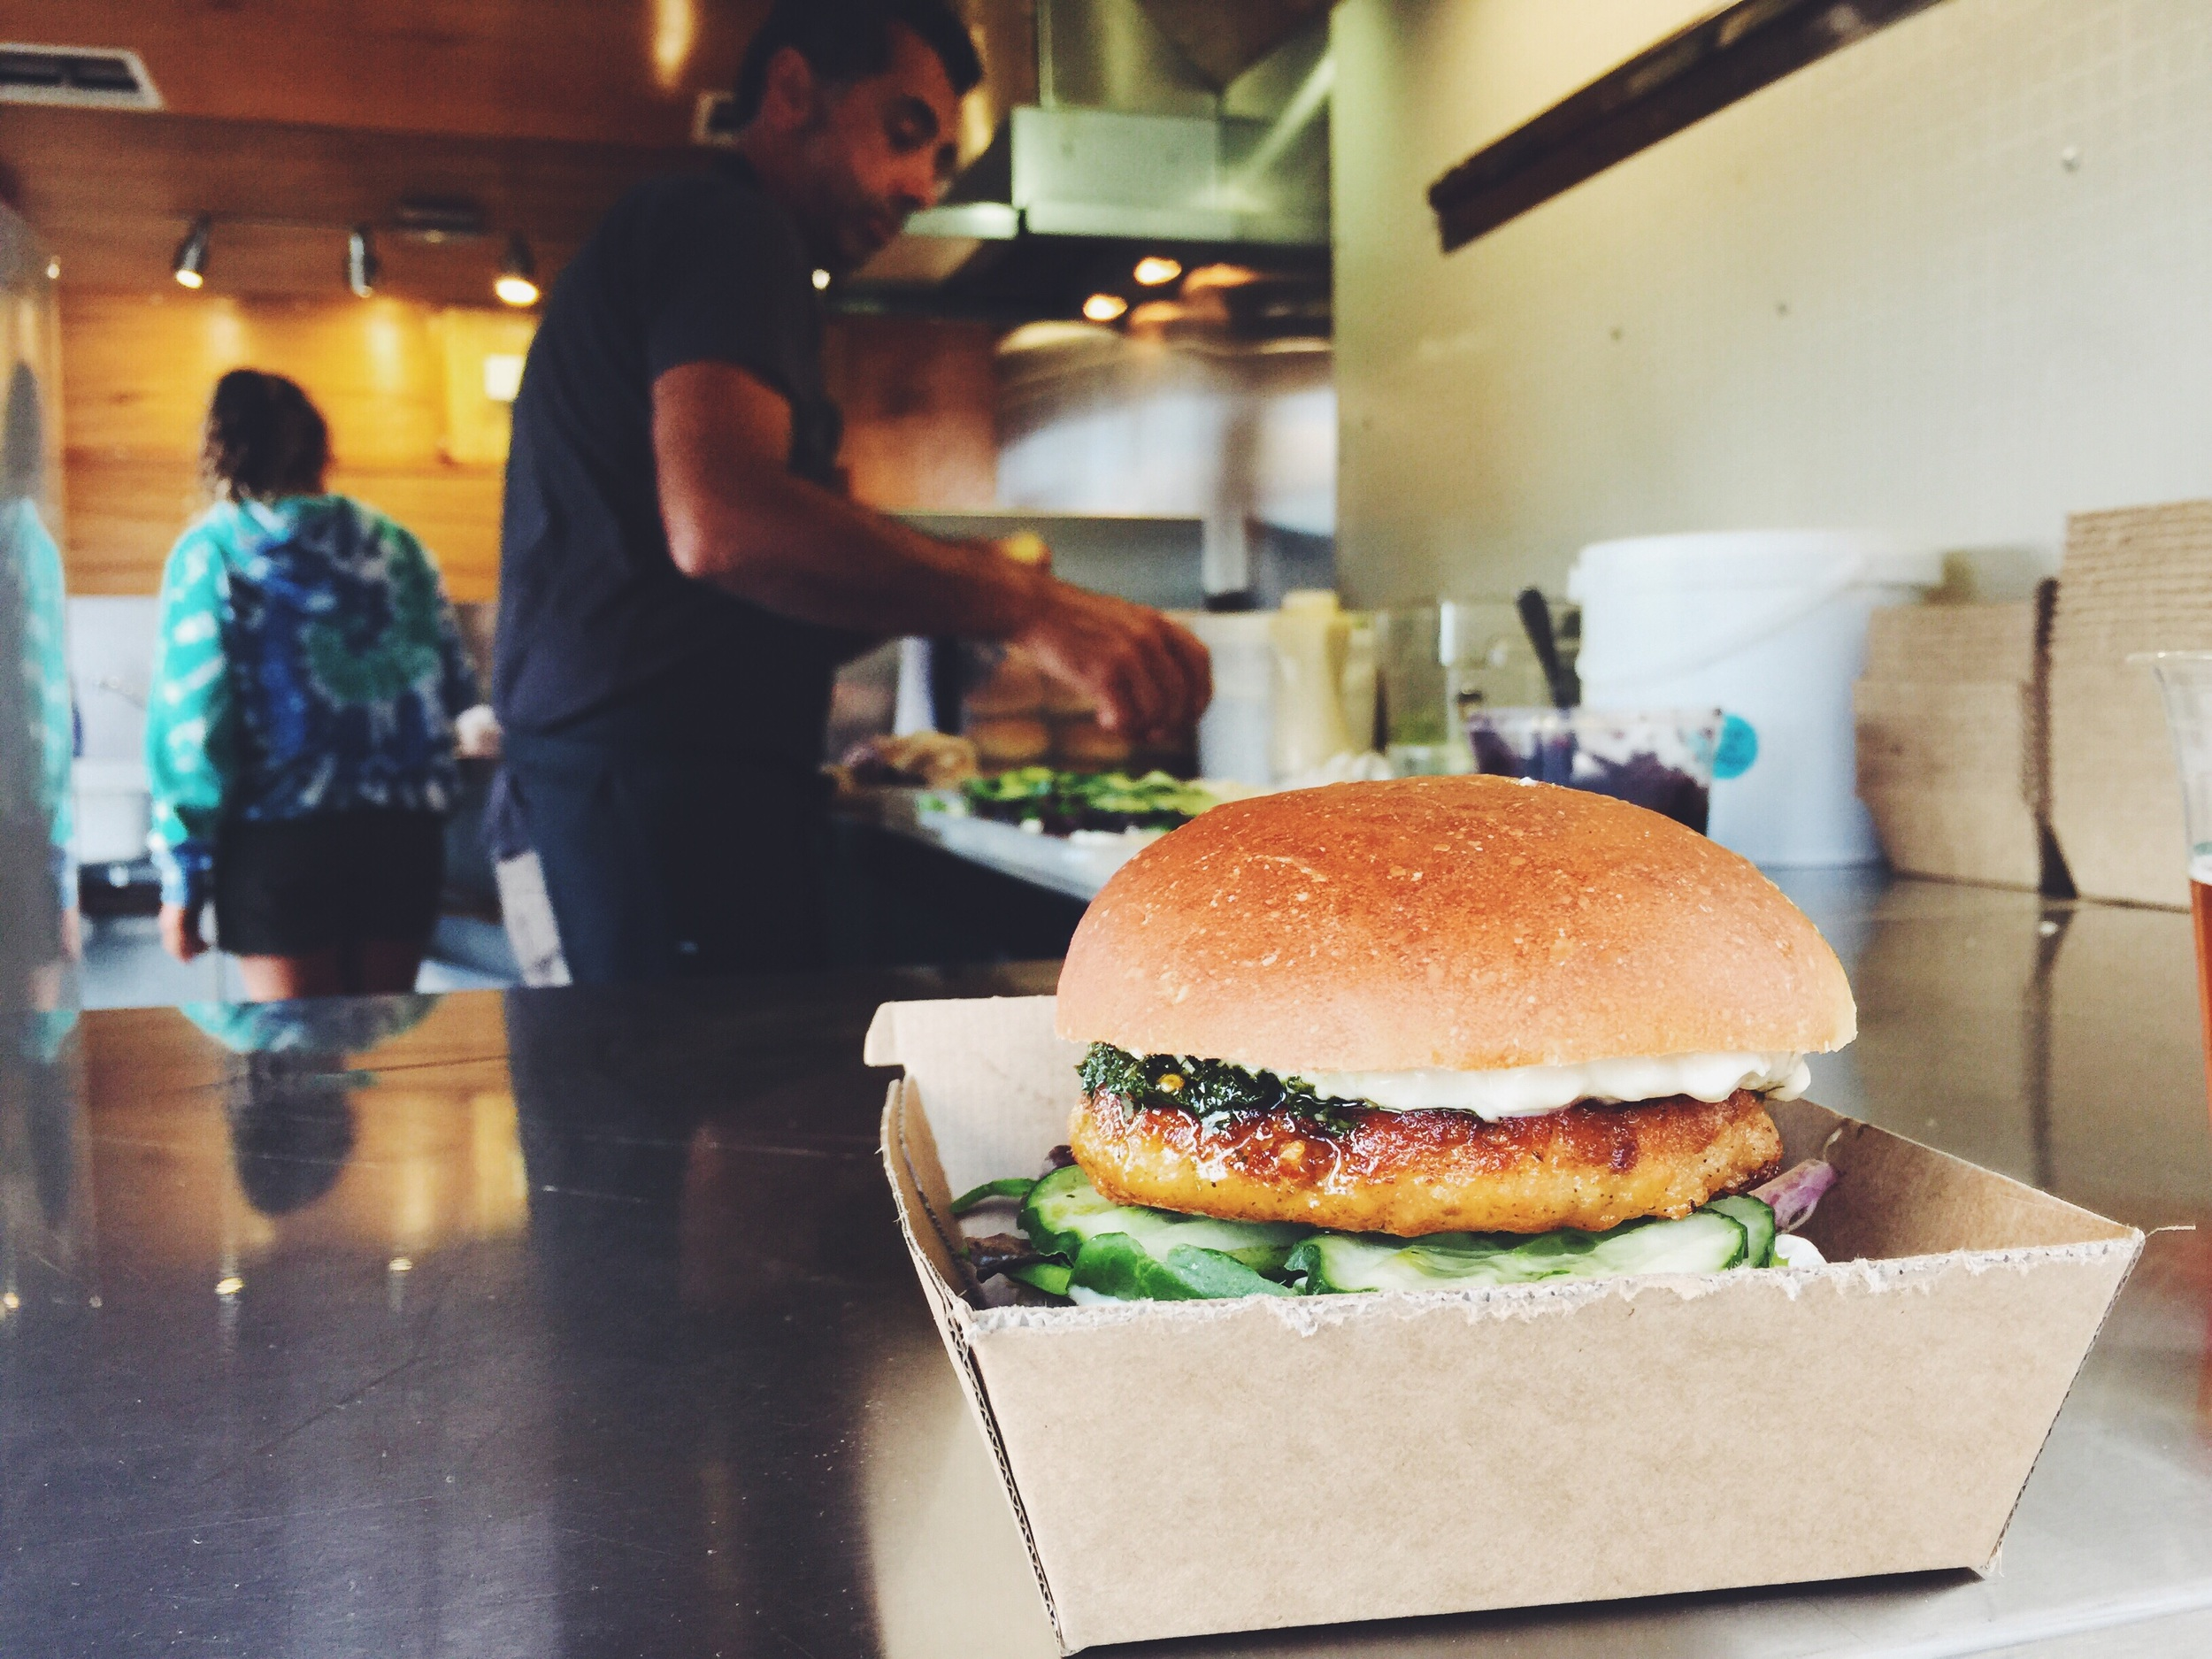 Delicious salmon burger from Coburg & Co